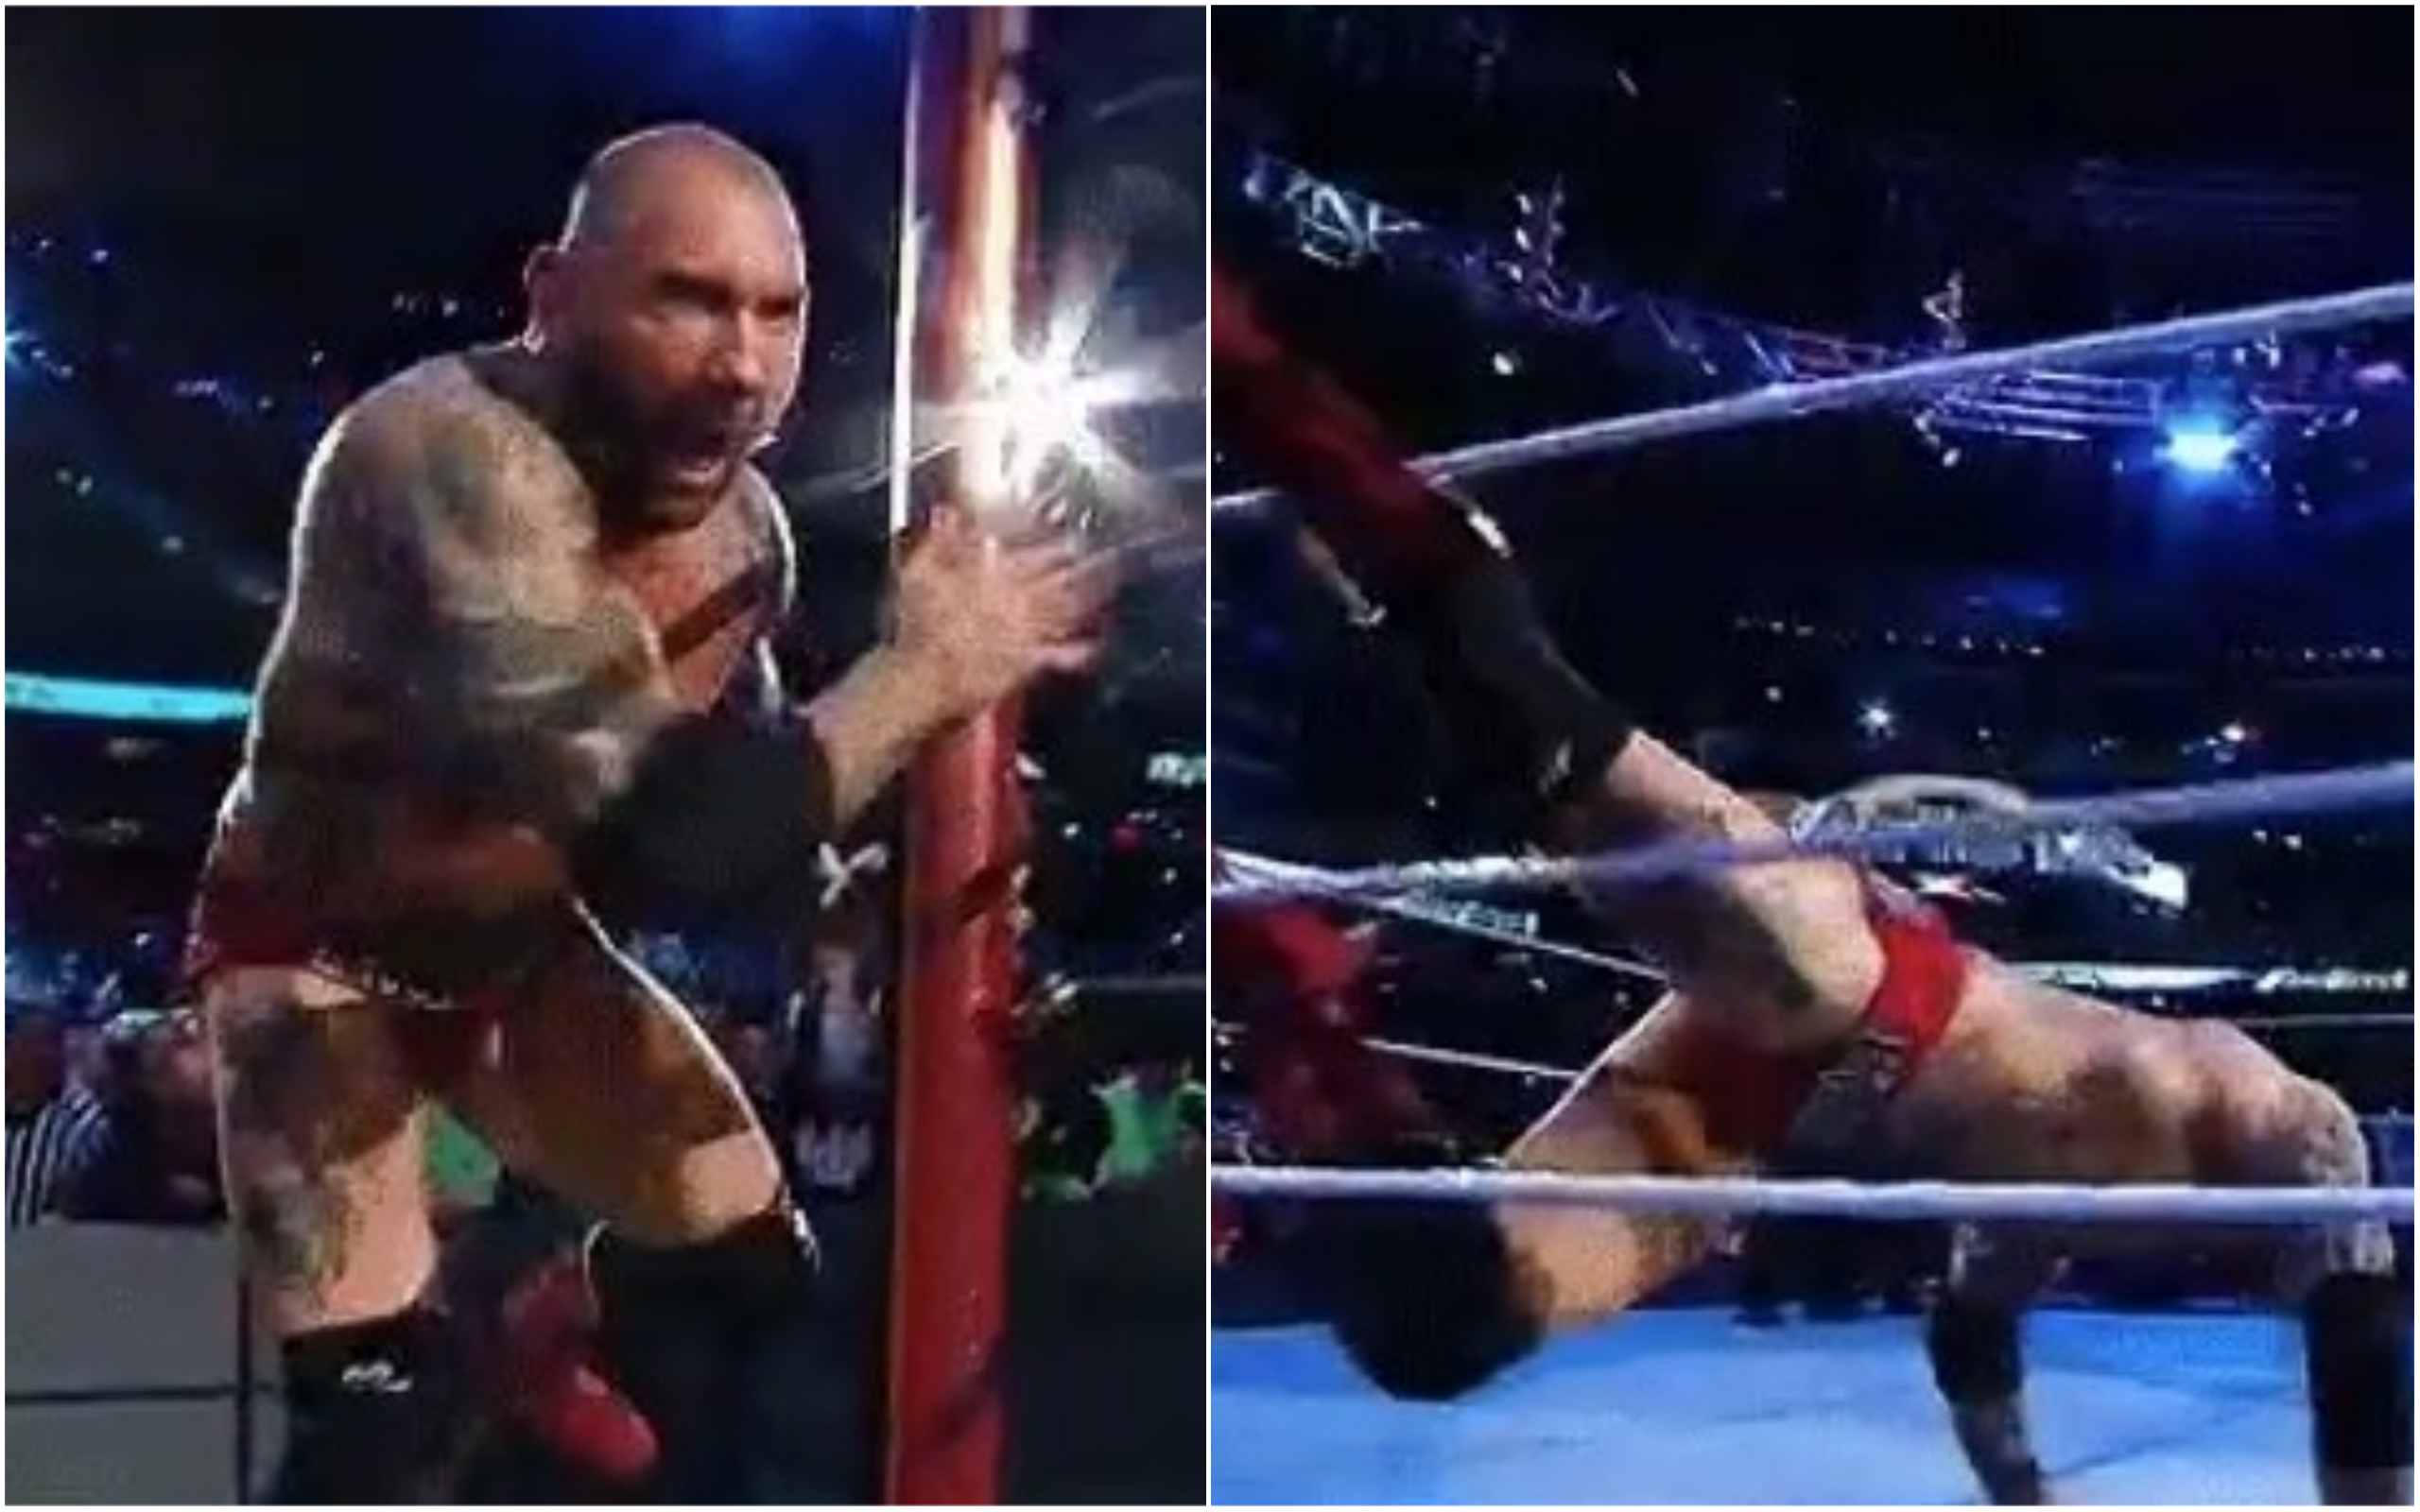 Batista trips up during WWE Wrestlemania 35 entrance before